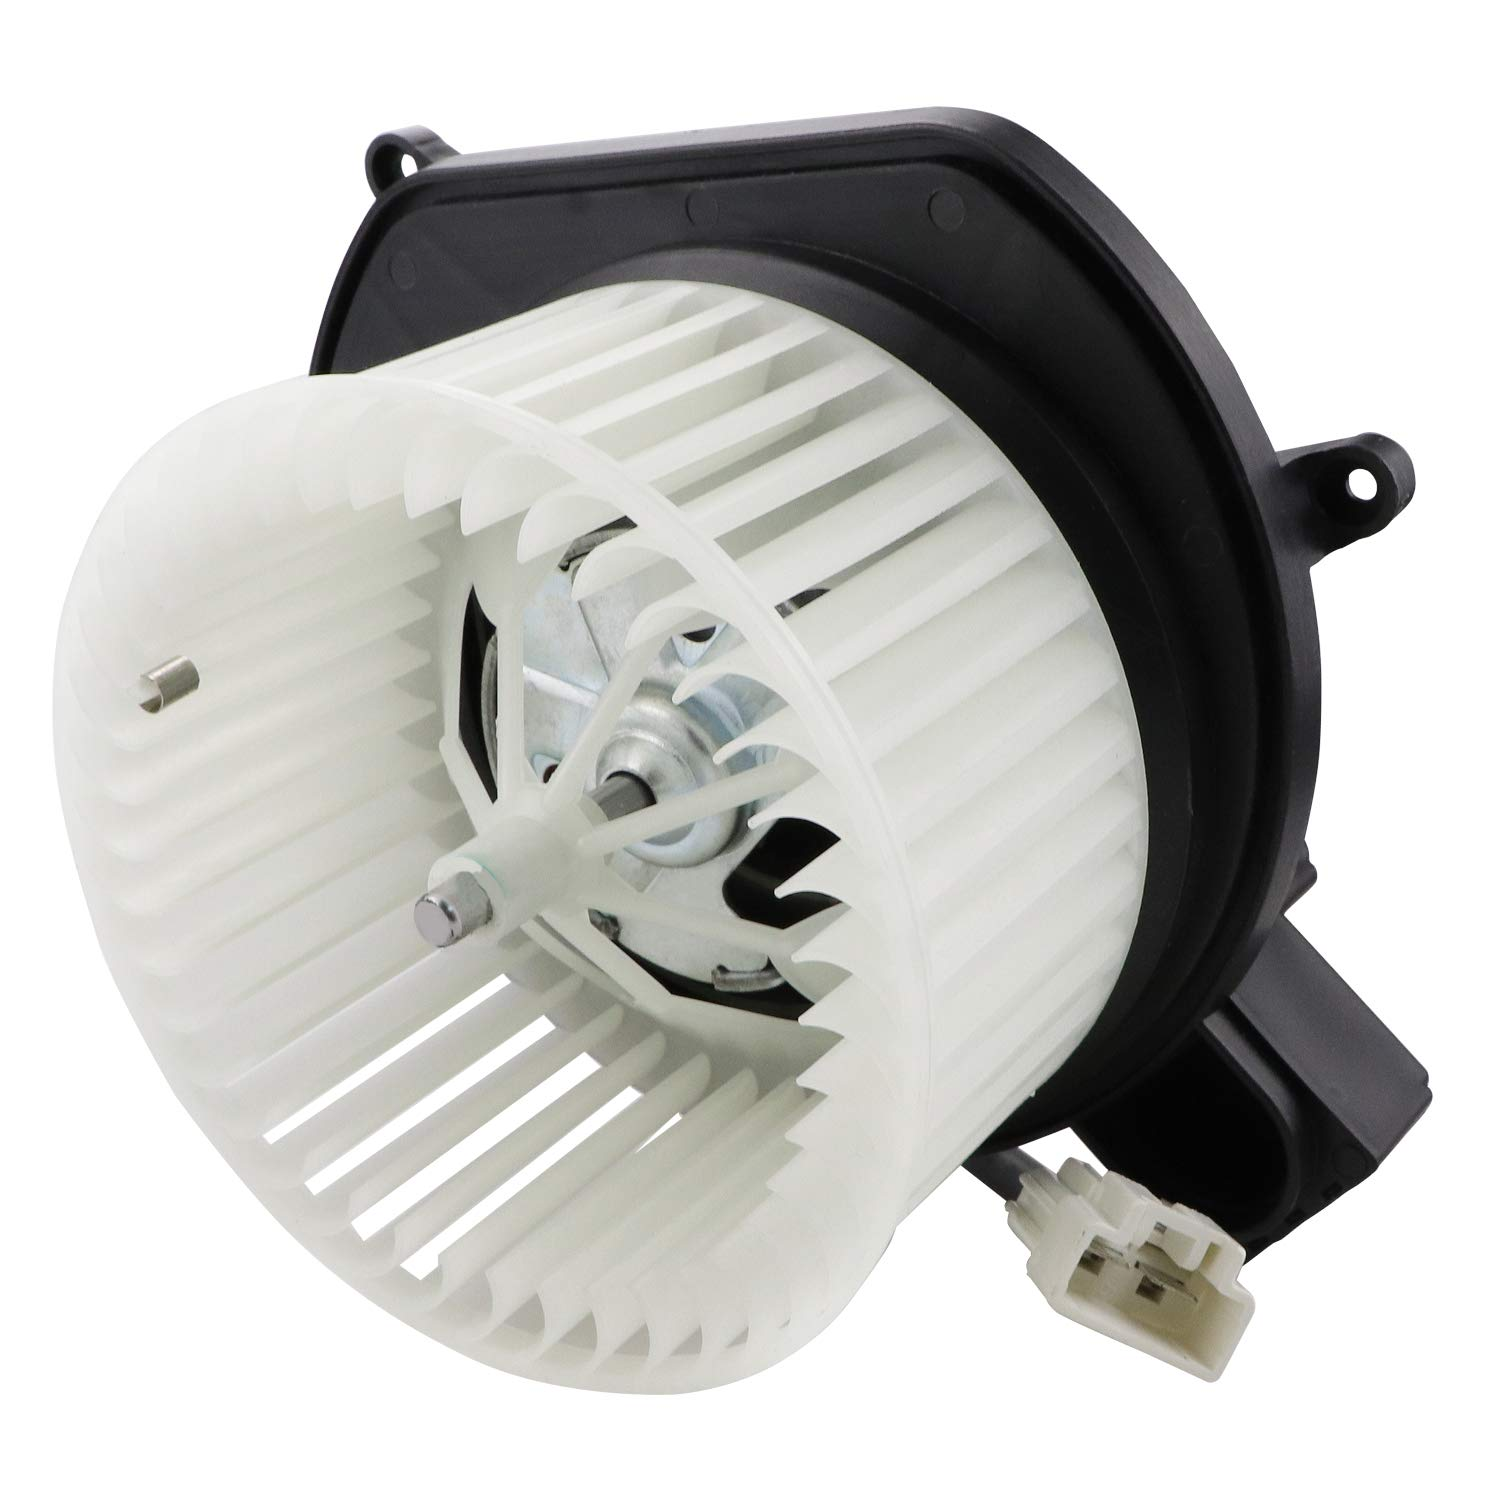 HVAC Blower Motor Assembly 700255 68003996AA 68038826AB 75860 75770 PM9379 6552616 Heater Blower Motor with Fan Cage for 2007-2011 Dodge Nitro; 2008-2012 Jeep Liberty